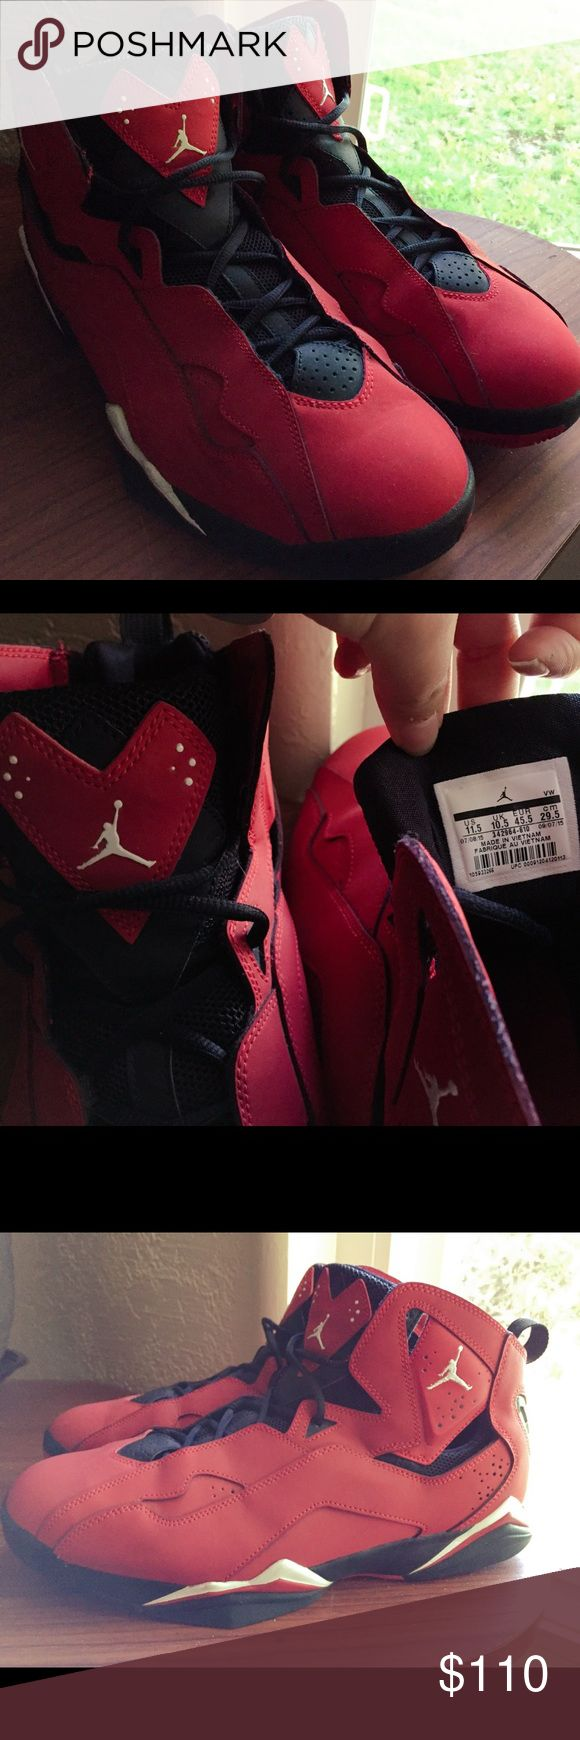 Red/black/white 11.5 Jordan limited edition All red black and white TRUE FLIGHTS JORDANS. Perfect for Valentine's Day with a heart on the tongue. Mint condition. Only worn 1-2 times. Clean bottom, clean inside. No scuffs. Size 11.5 us , 10.5 UK, EUR 45.5, good quality. Original laces, and no smell. Jordan Shoes Sneakers